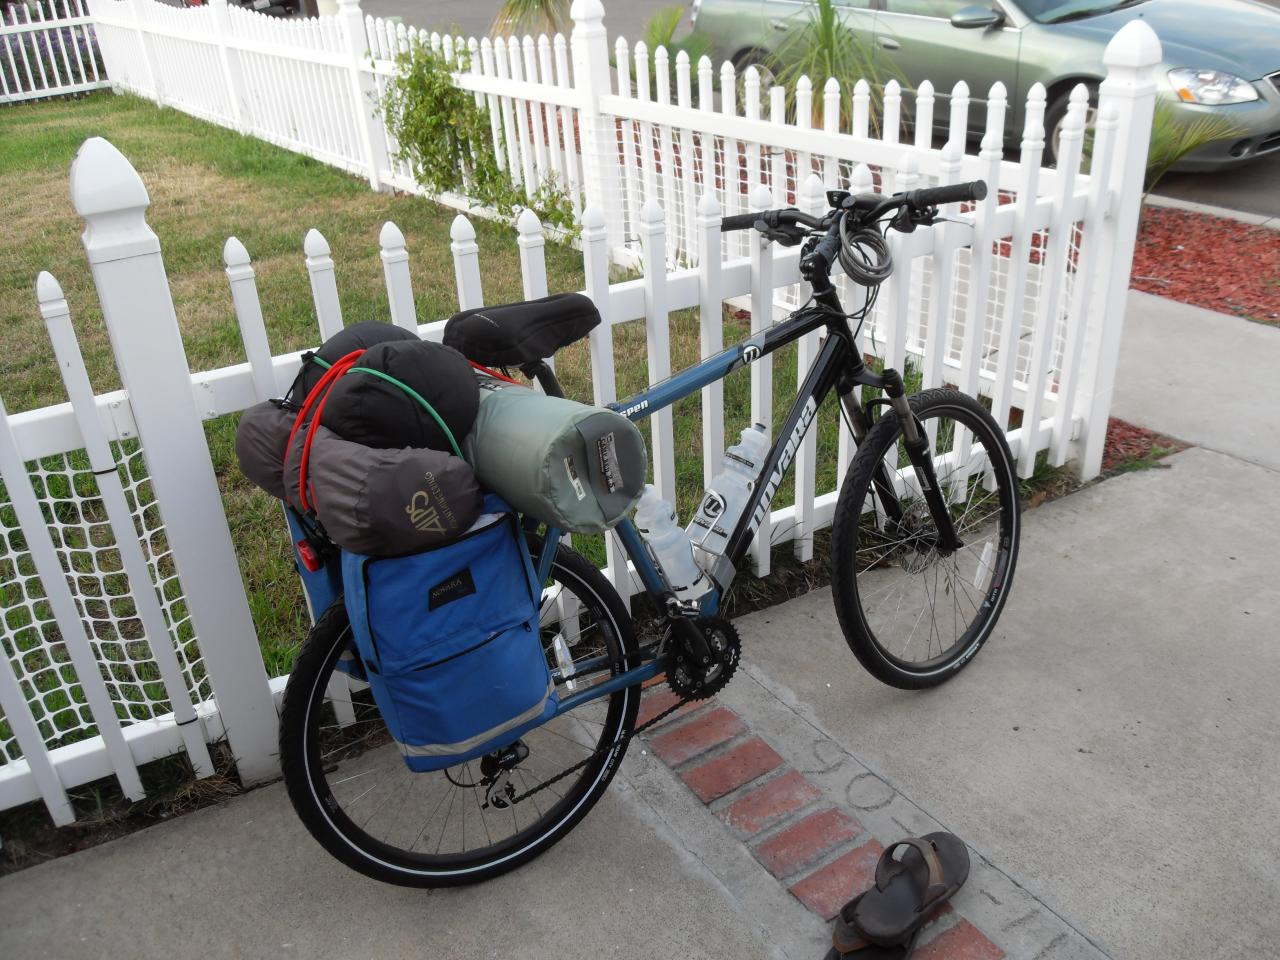 Packed and ready to go for 7 day bike trip